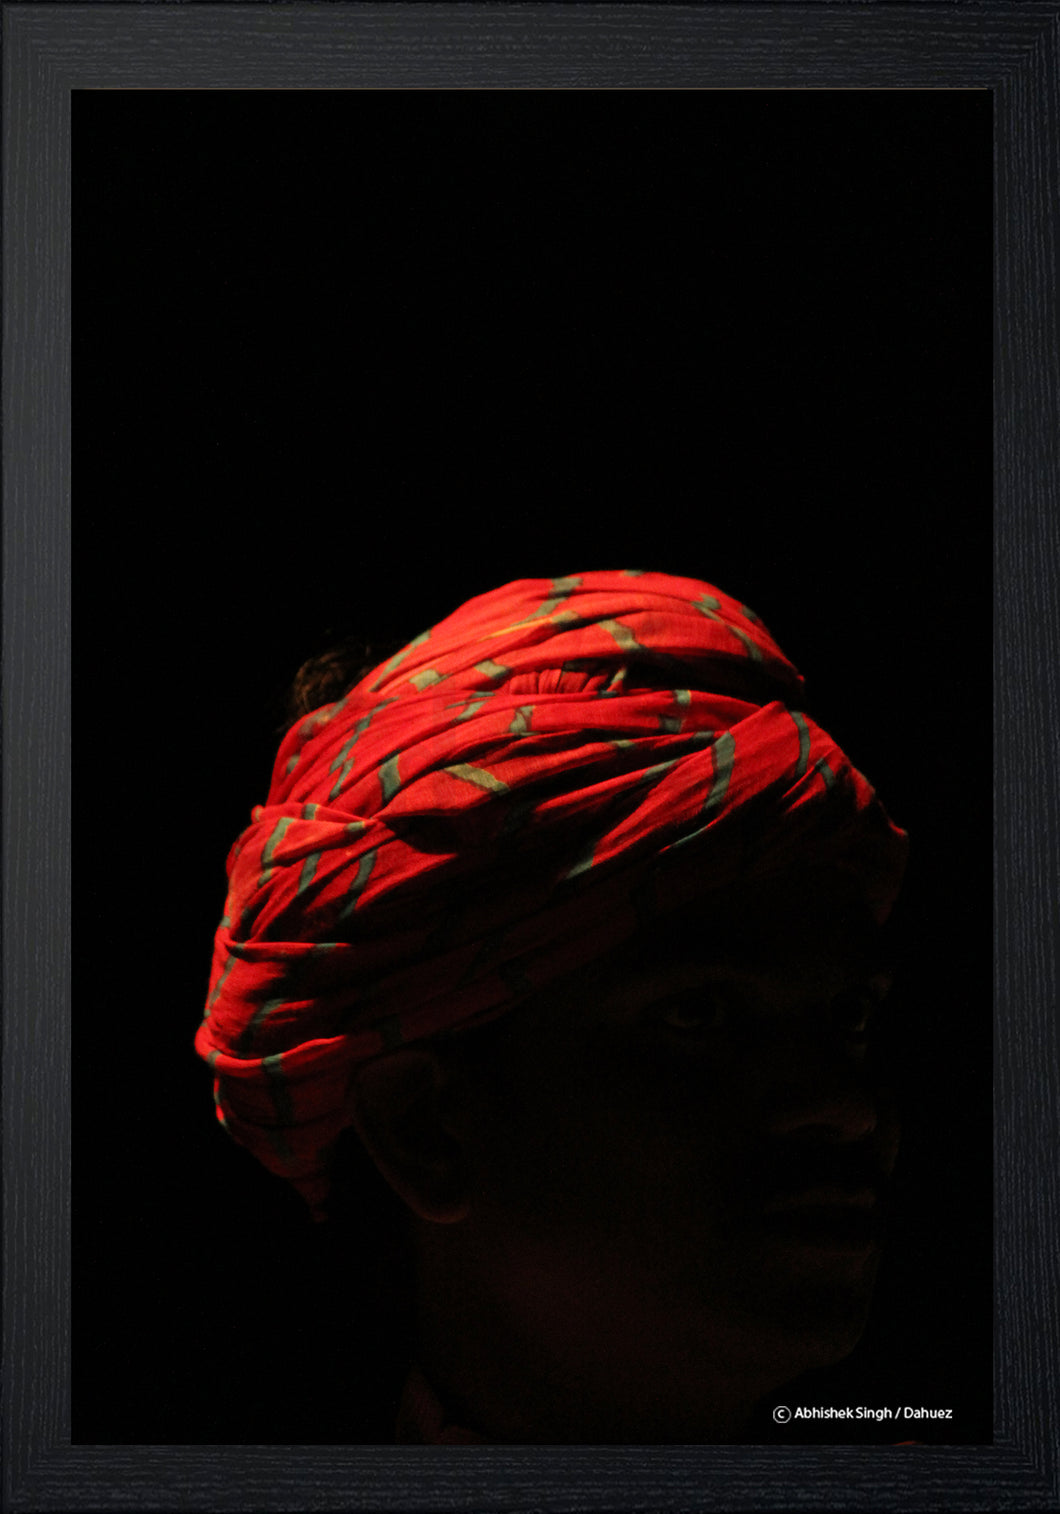 RED TURBAN by Abhishek Singh